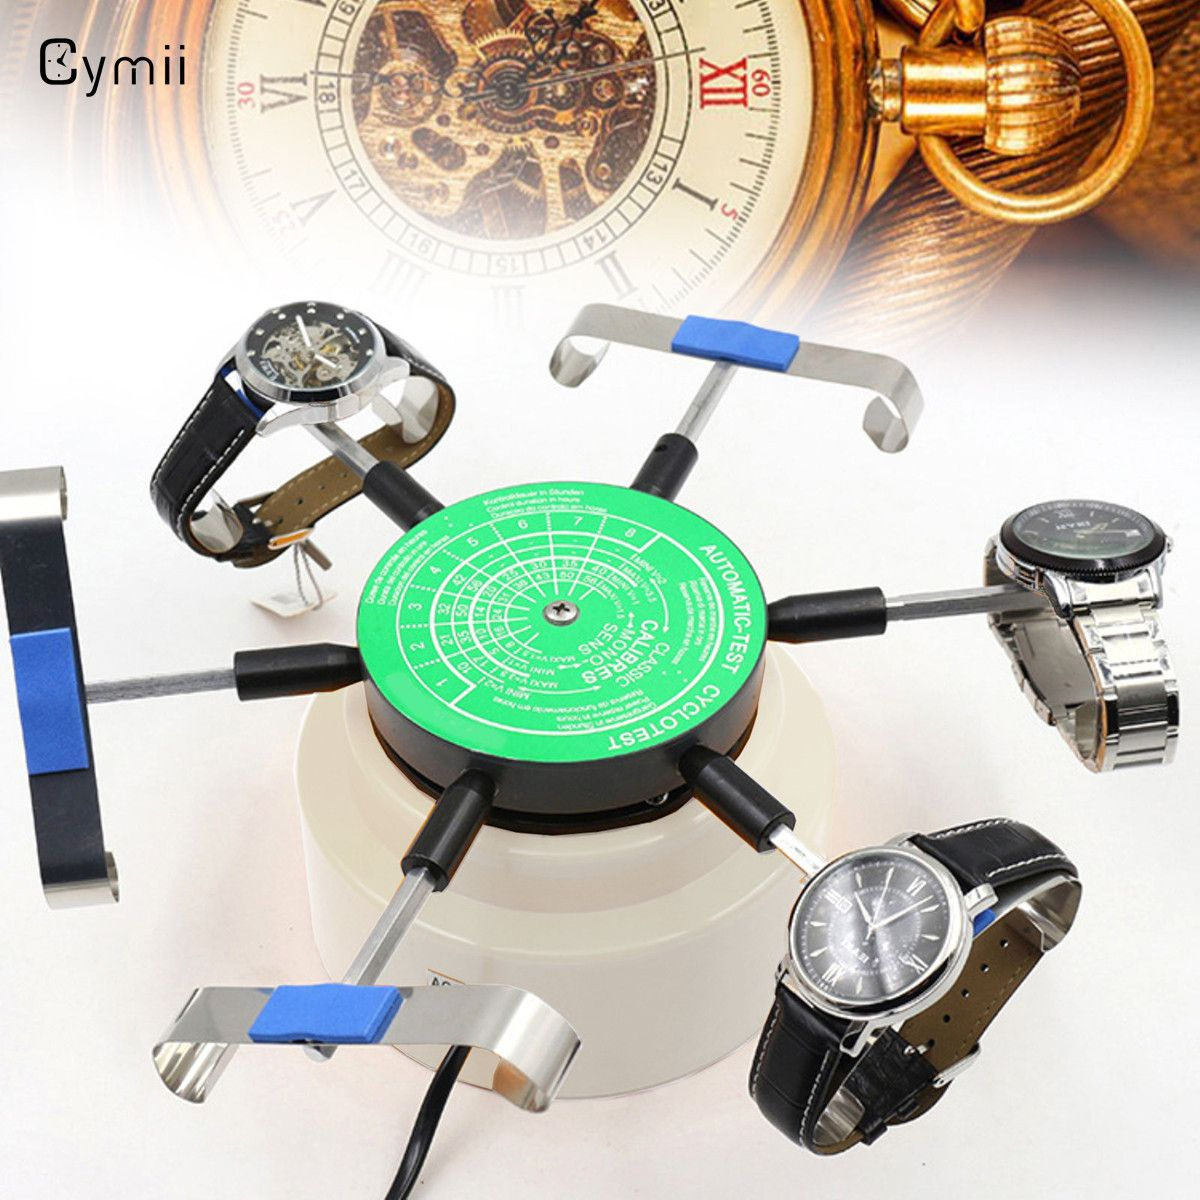 Cymii US Standard 110V-220V Professional Automic-Test Cyclotest Watches Tester Watch Test Machine Six Watches Position